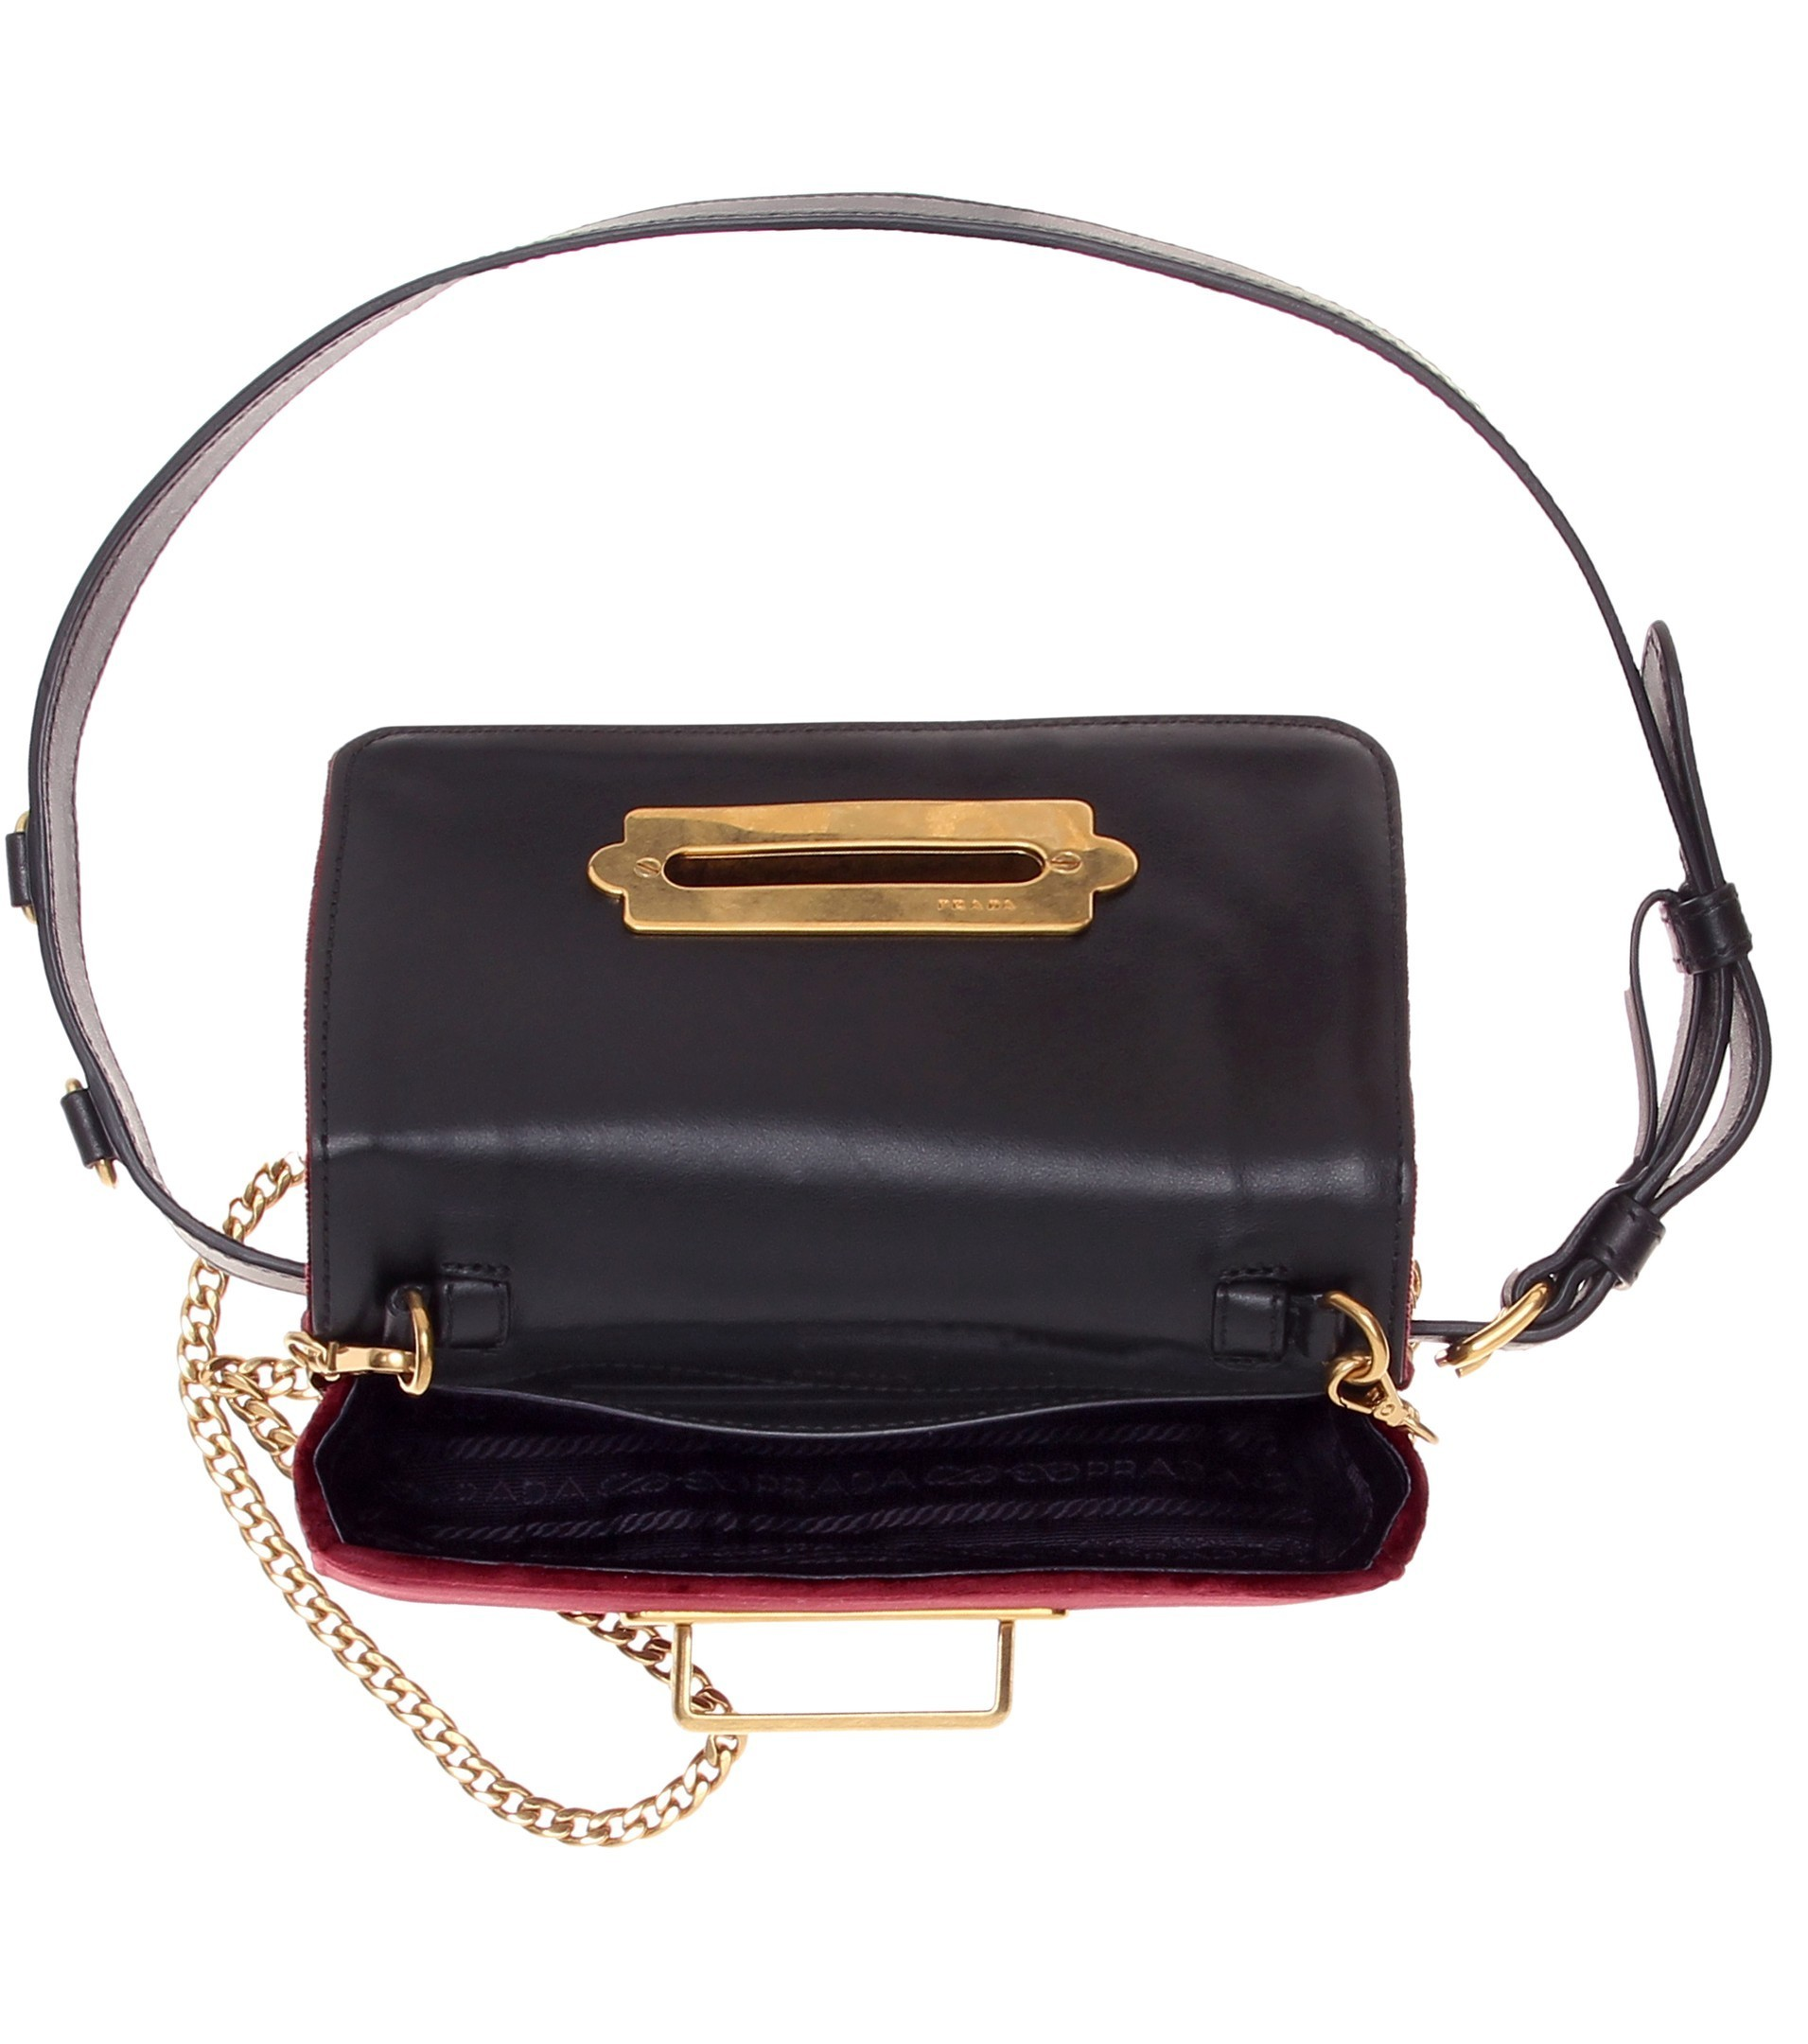 PR604 CAHIER FANNY PACK WITH METAL CHAIN